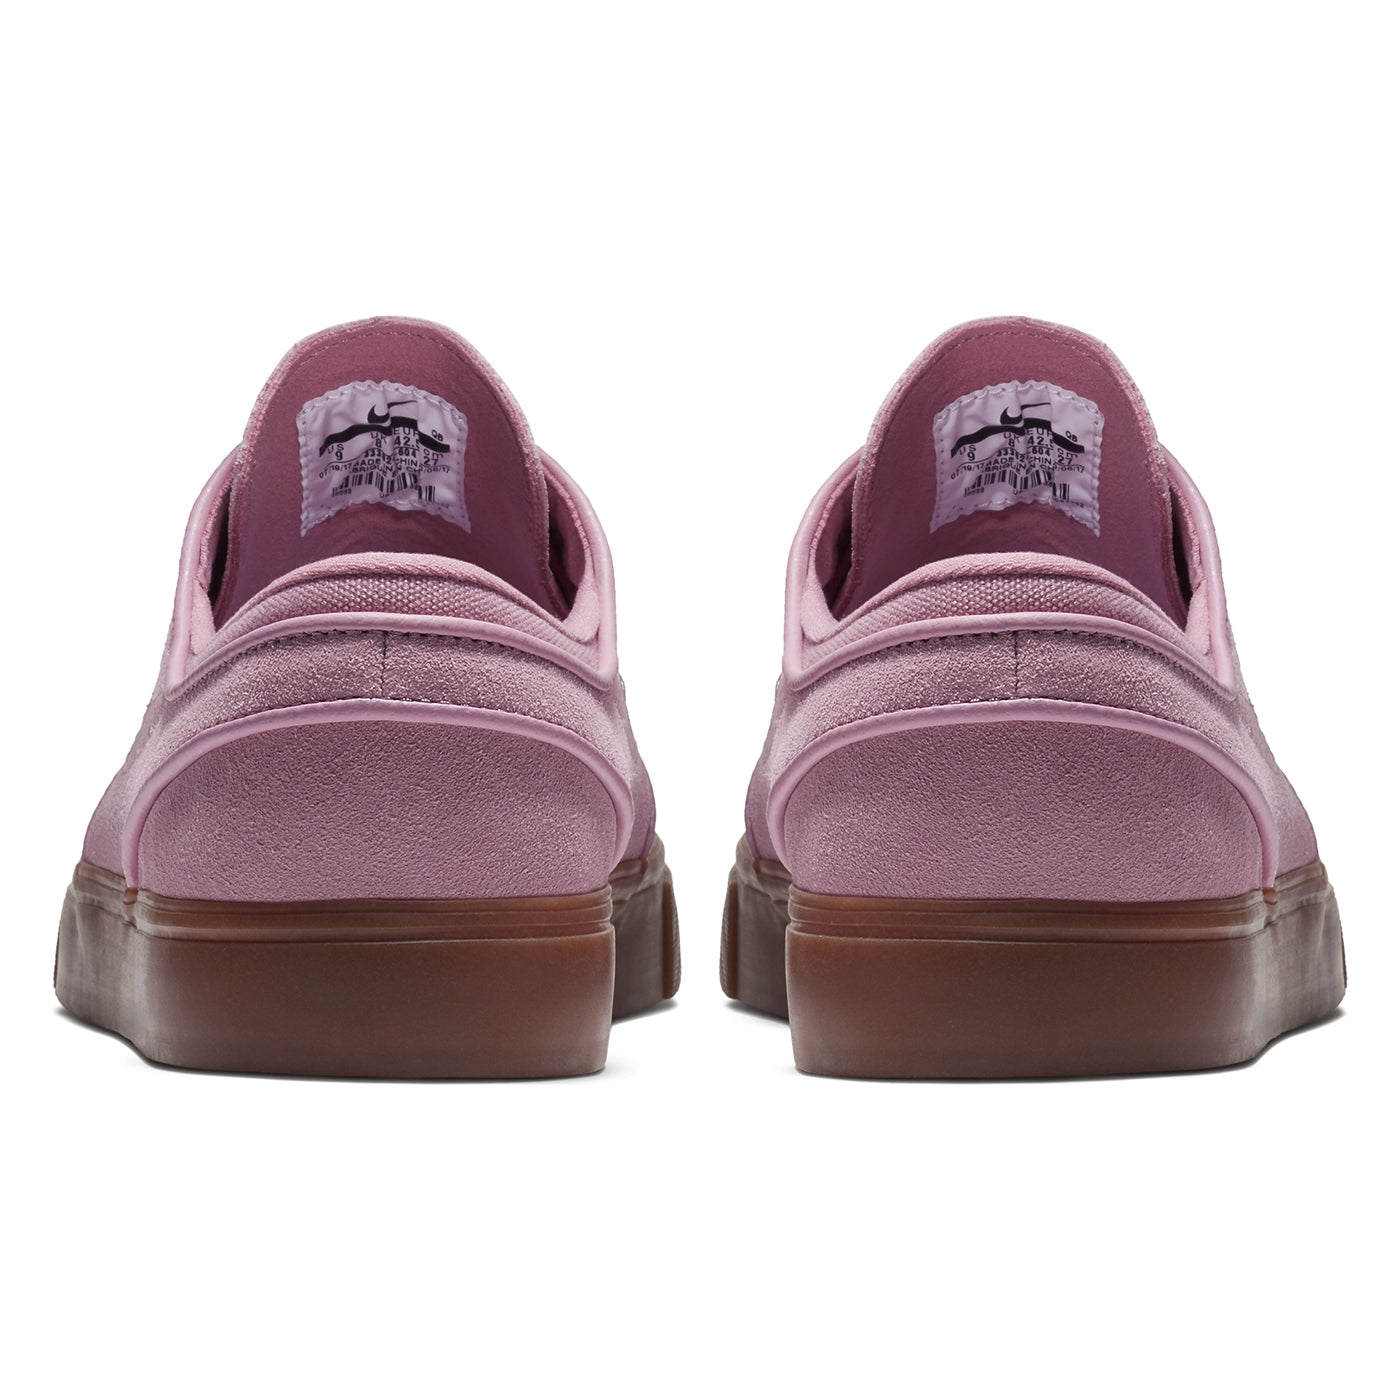 official photos b2b98 86695 Nike SB Zoom Stefan Janoski Shoes - Elemental Pink   Sequoia   Gum Dark  Brown   Elemental Pink. Size Charts